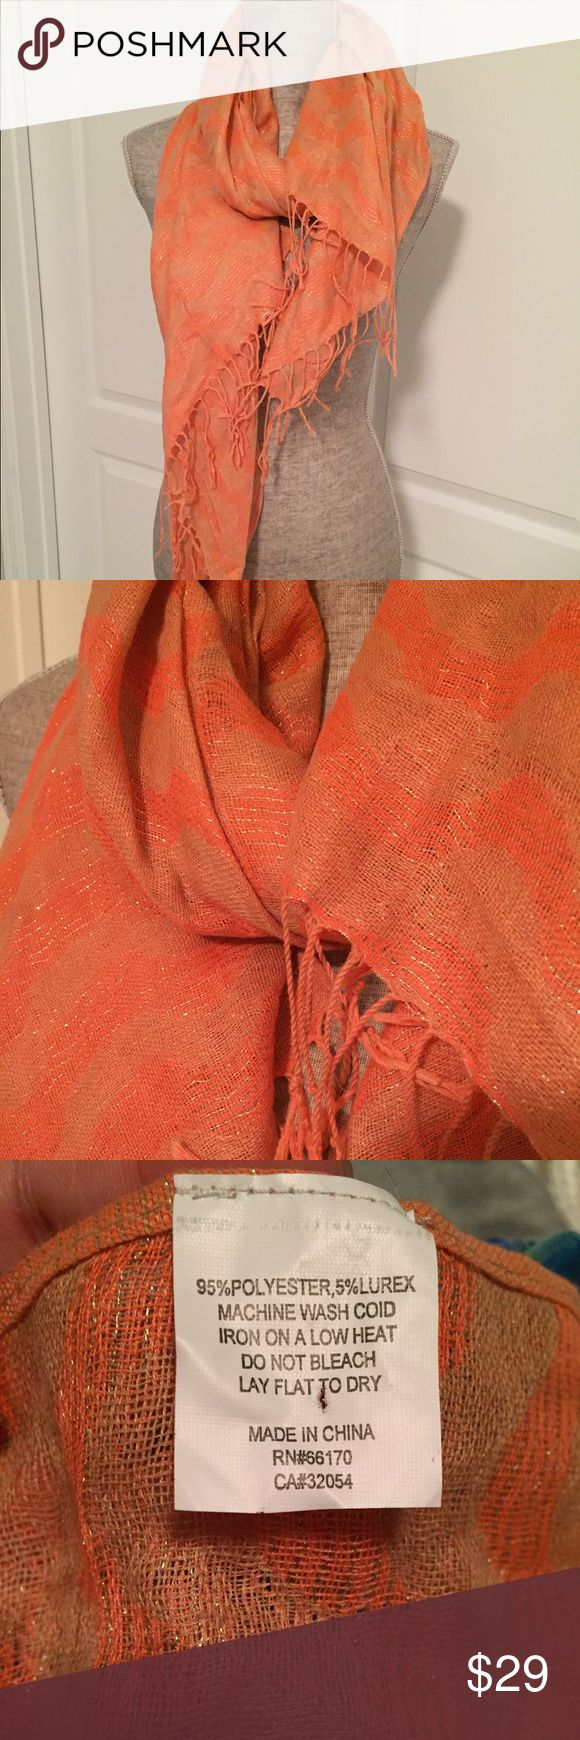 Anthropologie Scarf Orangey-coral scarf with some shimmer threads.  Round shaped pull, pictured. Anthropologie Accessories Scarves & Wraps